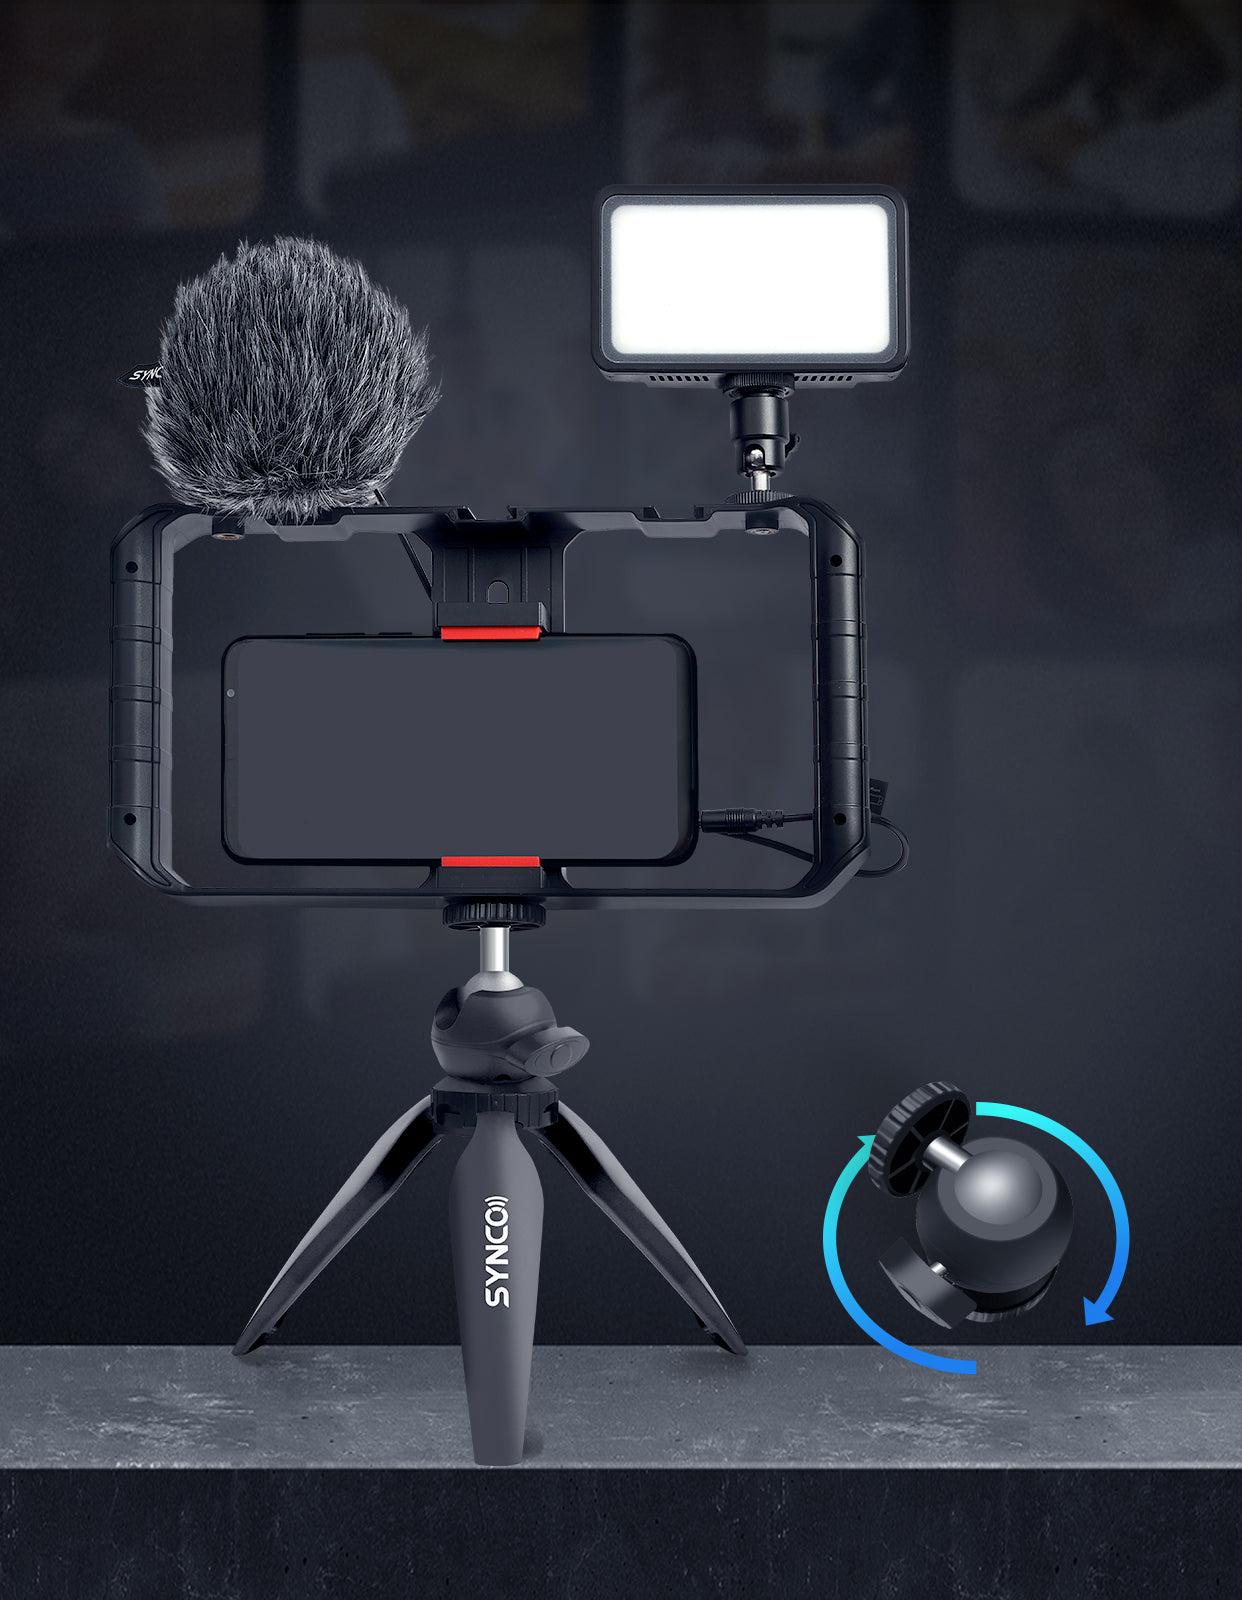 SYNCO Vlogger Kit 1 More Flexibility for Perfect Shooting